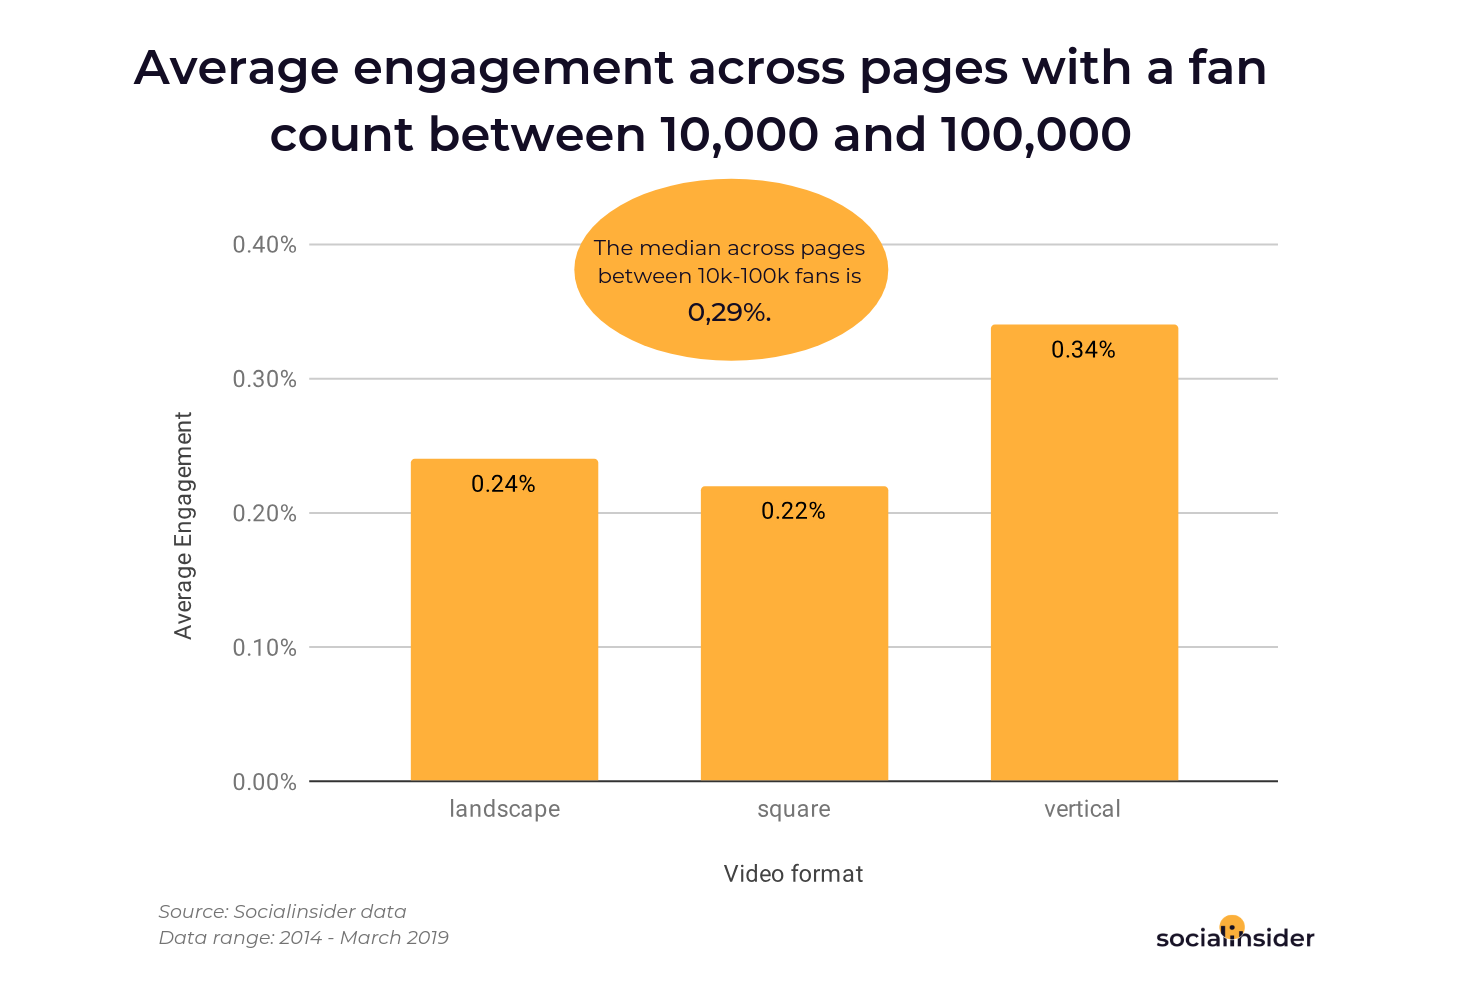 Video engagement across pages with a fan count between 10,000 and 100,000